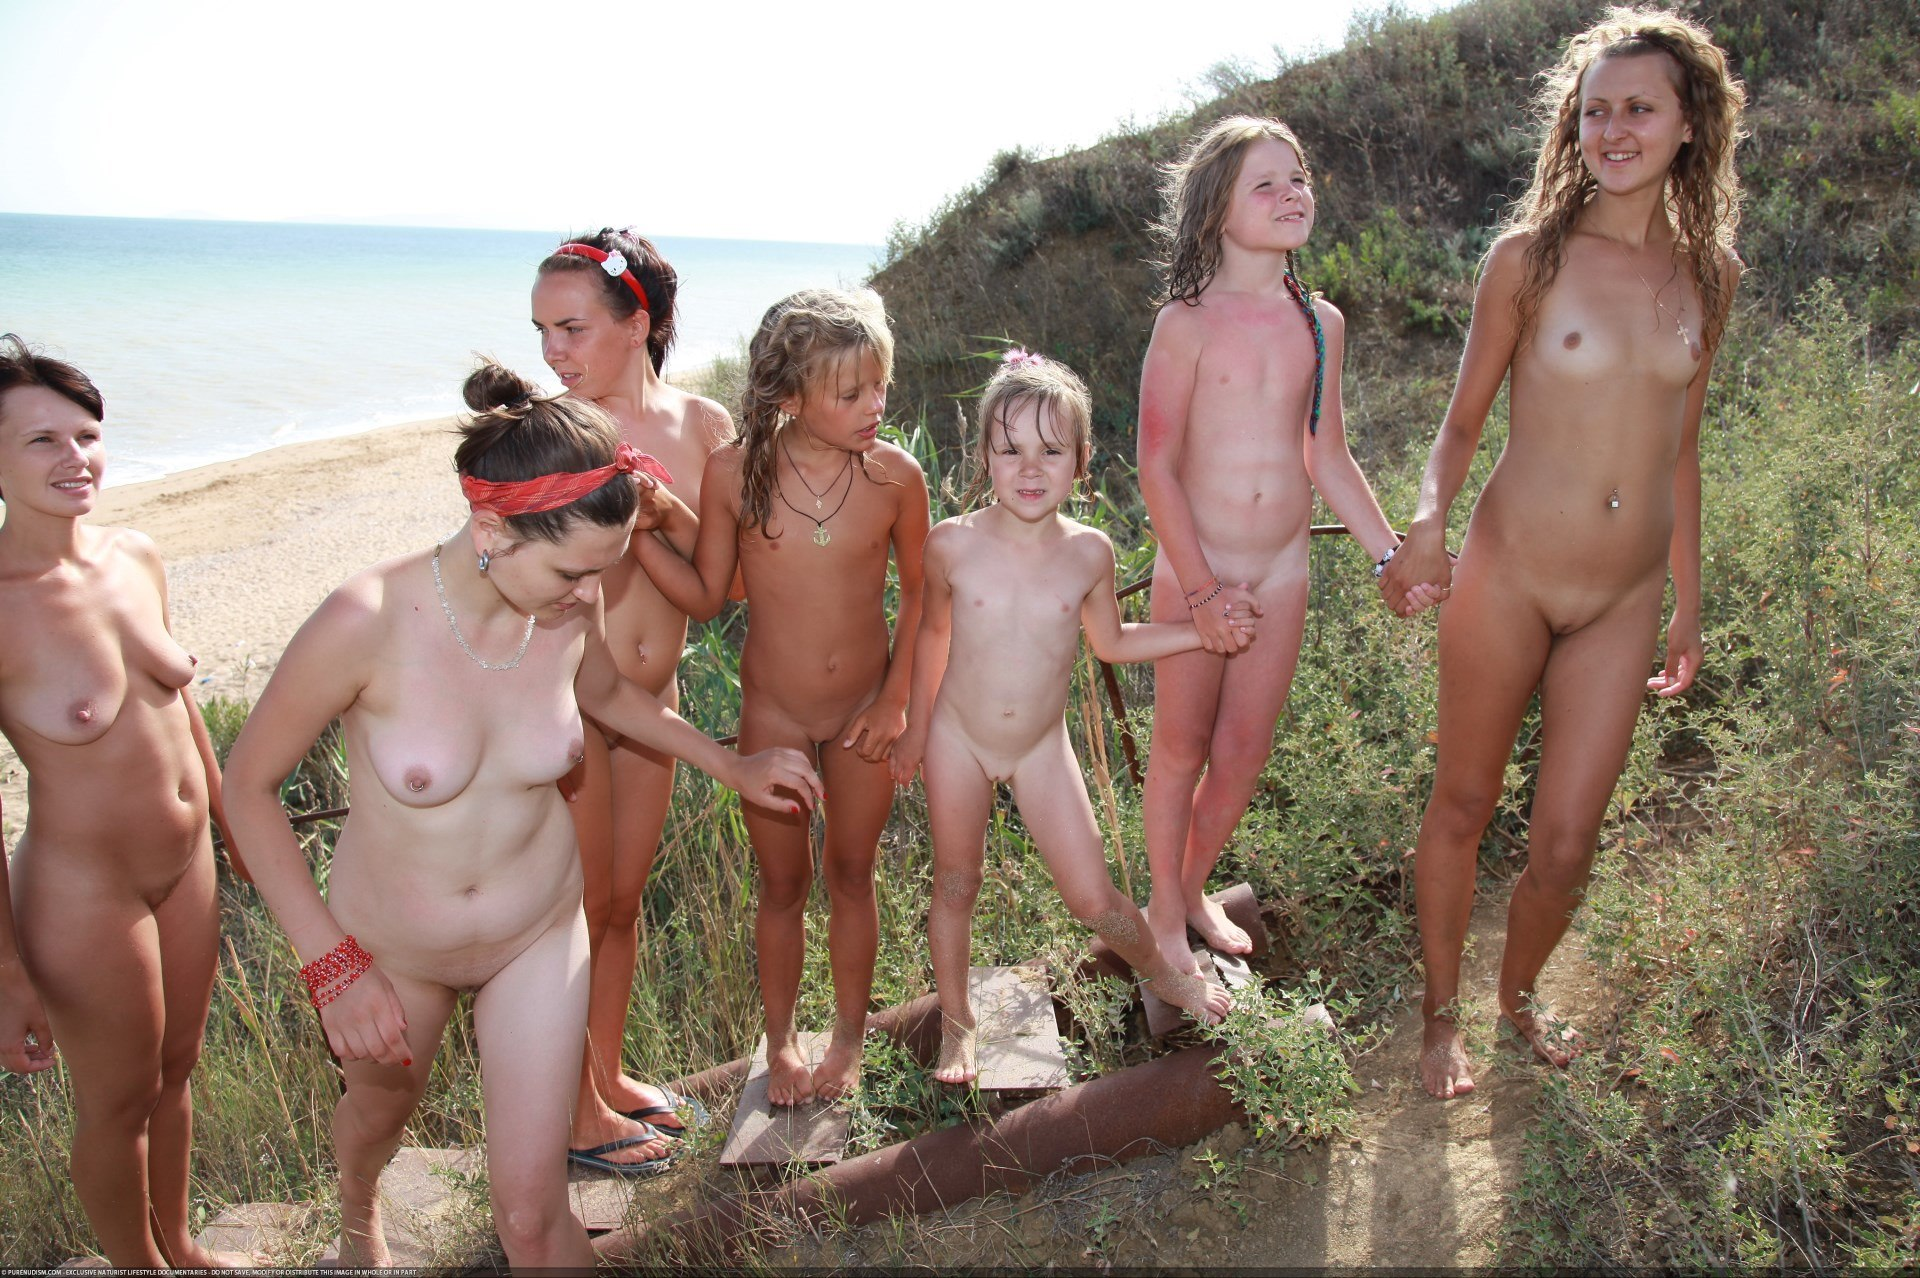 Rather Russian family nudist